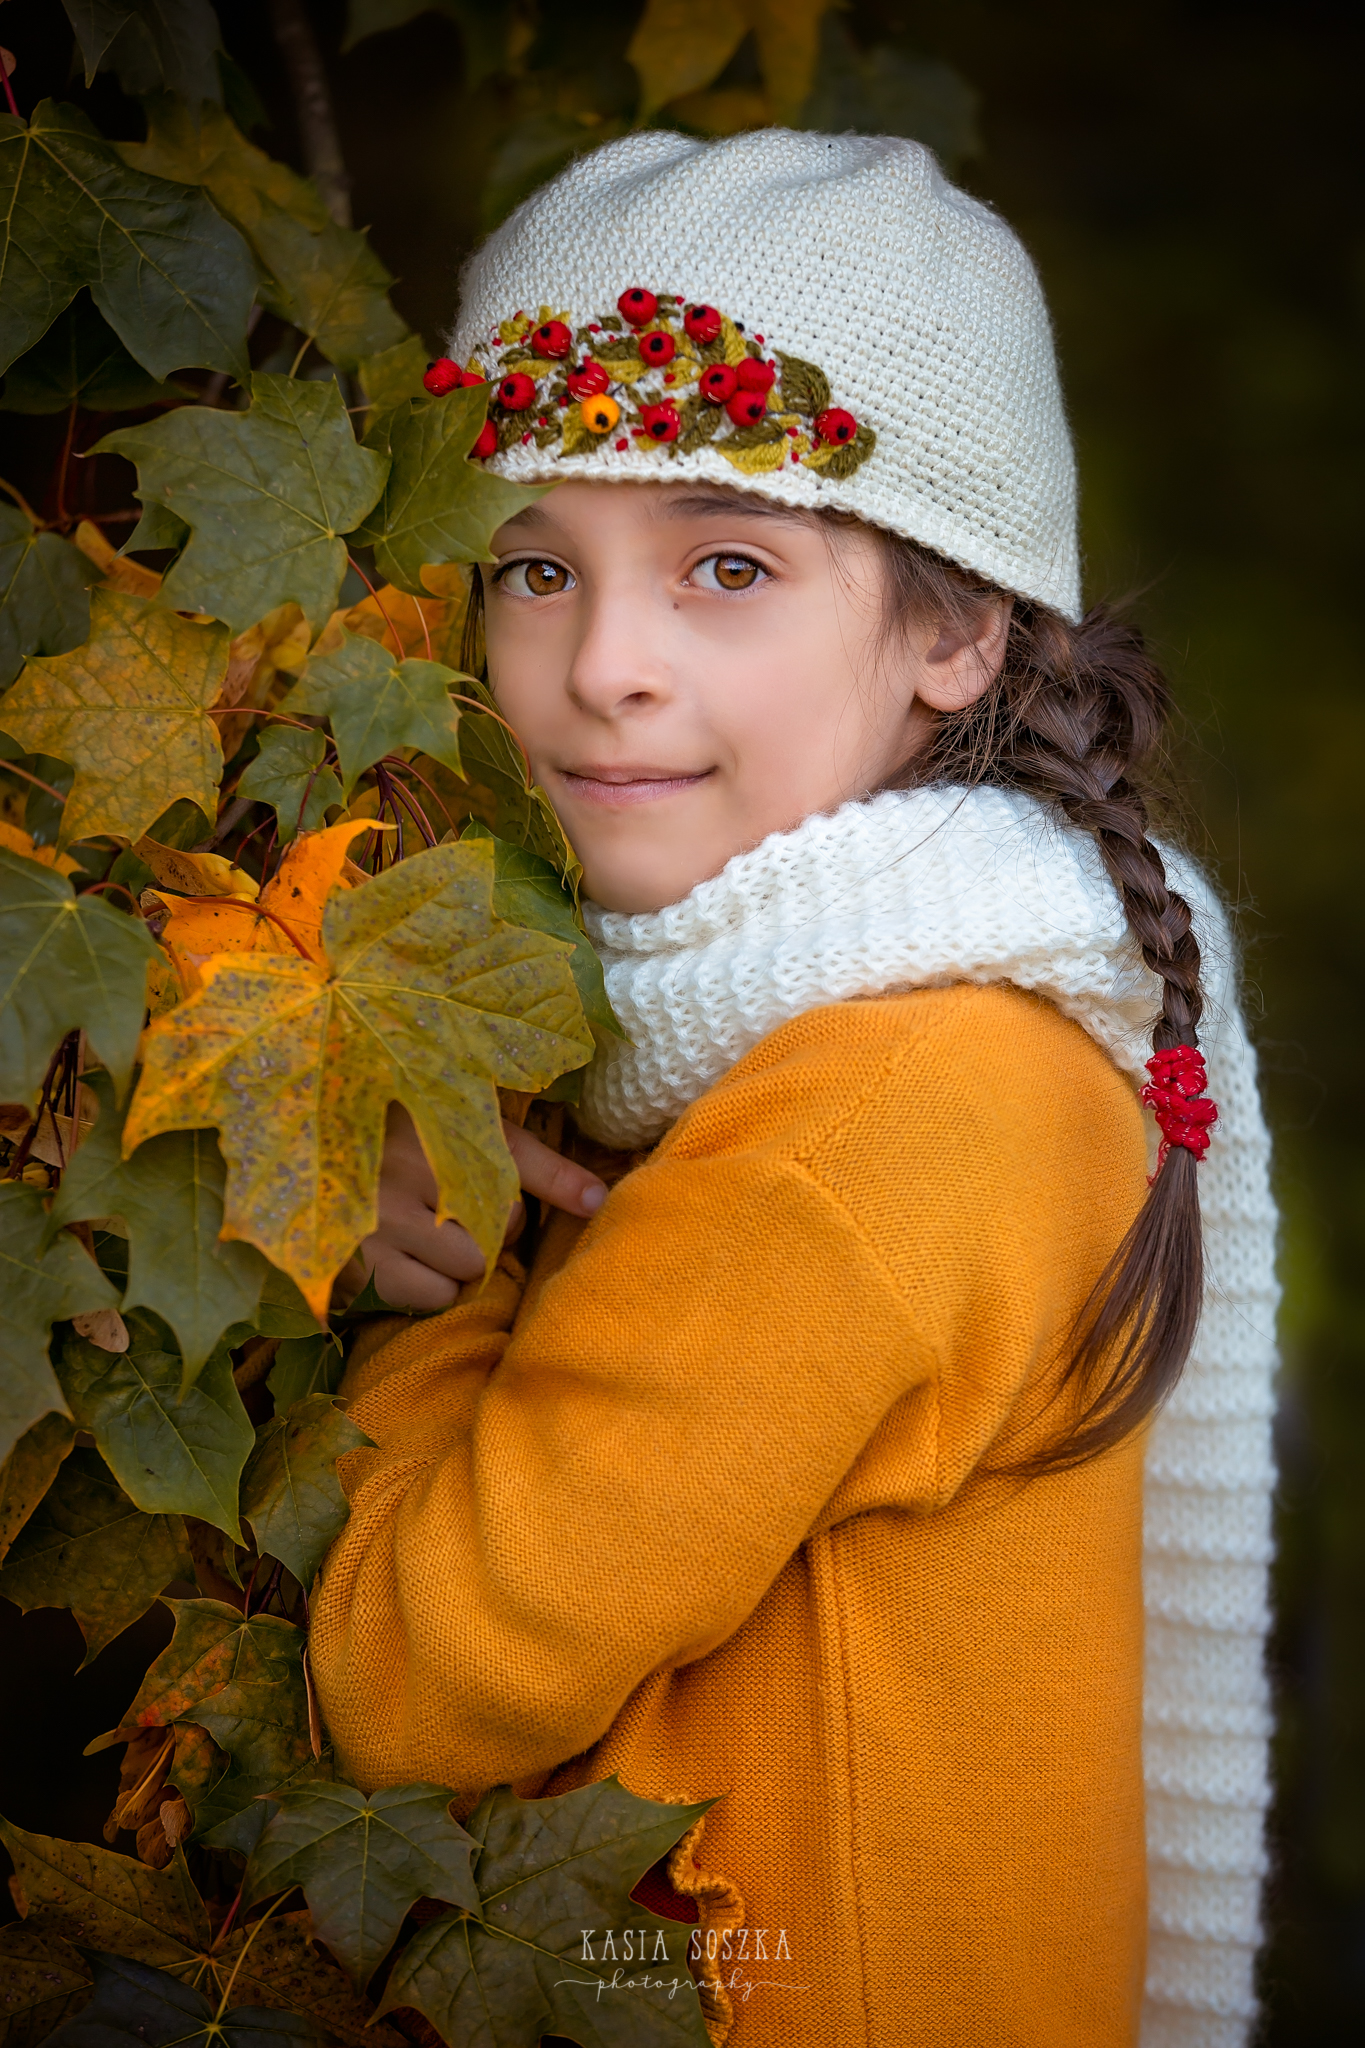 Children photography Leeds, York, Bradford, Harrogate: girl in a yellow sweater and autumn leaves. Child autumn session in Leeds, Yorkshire